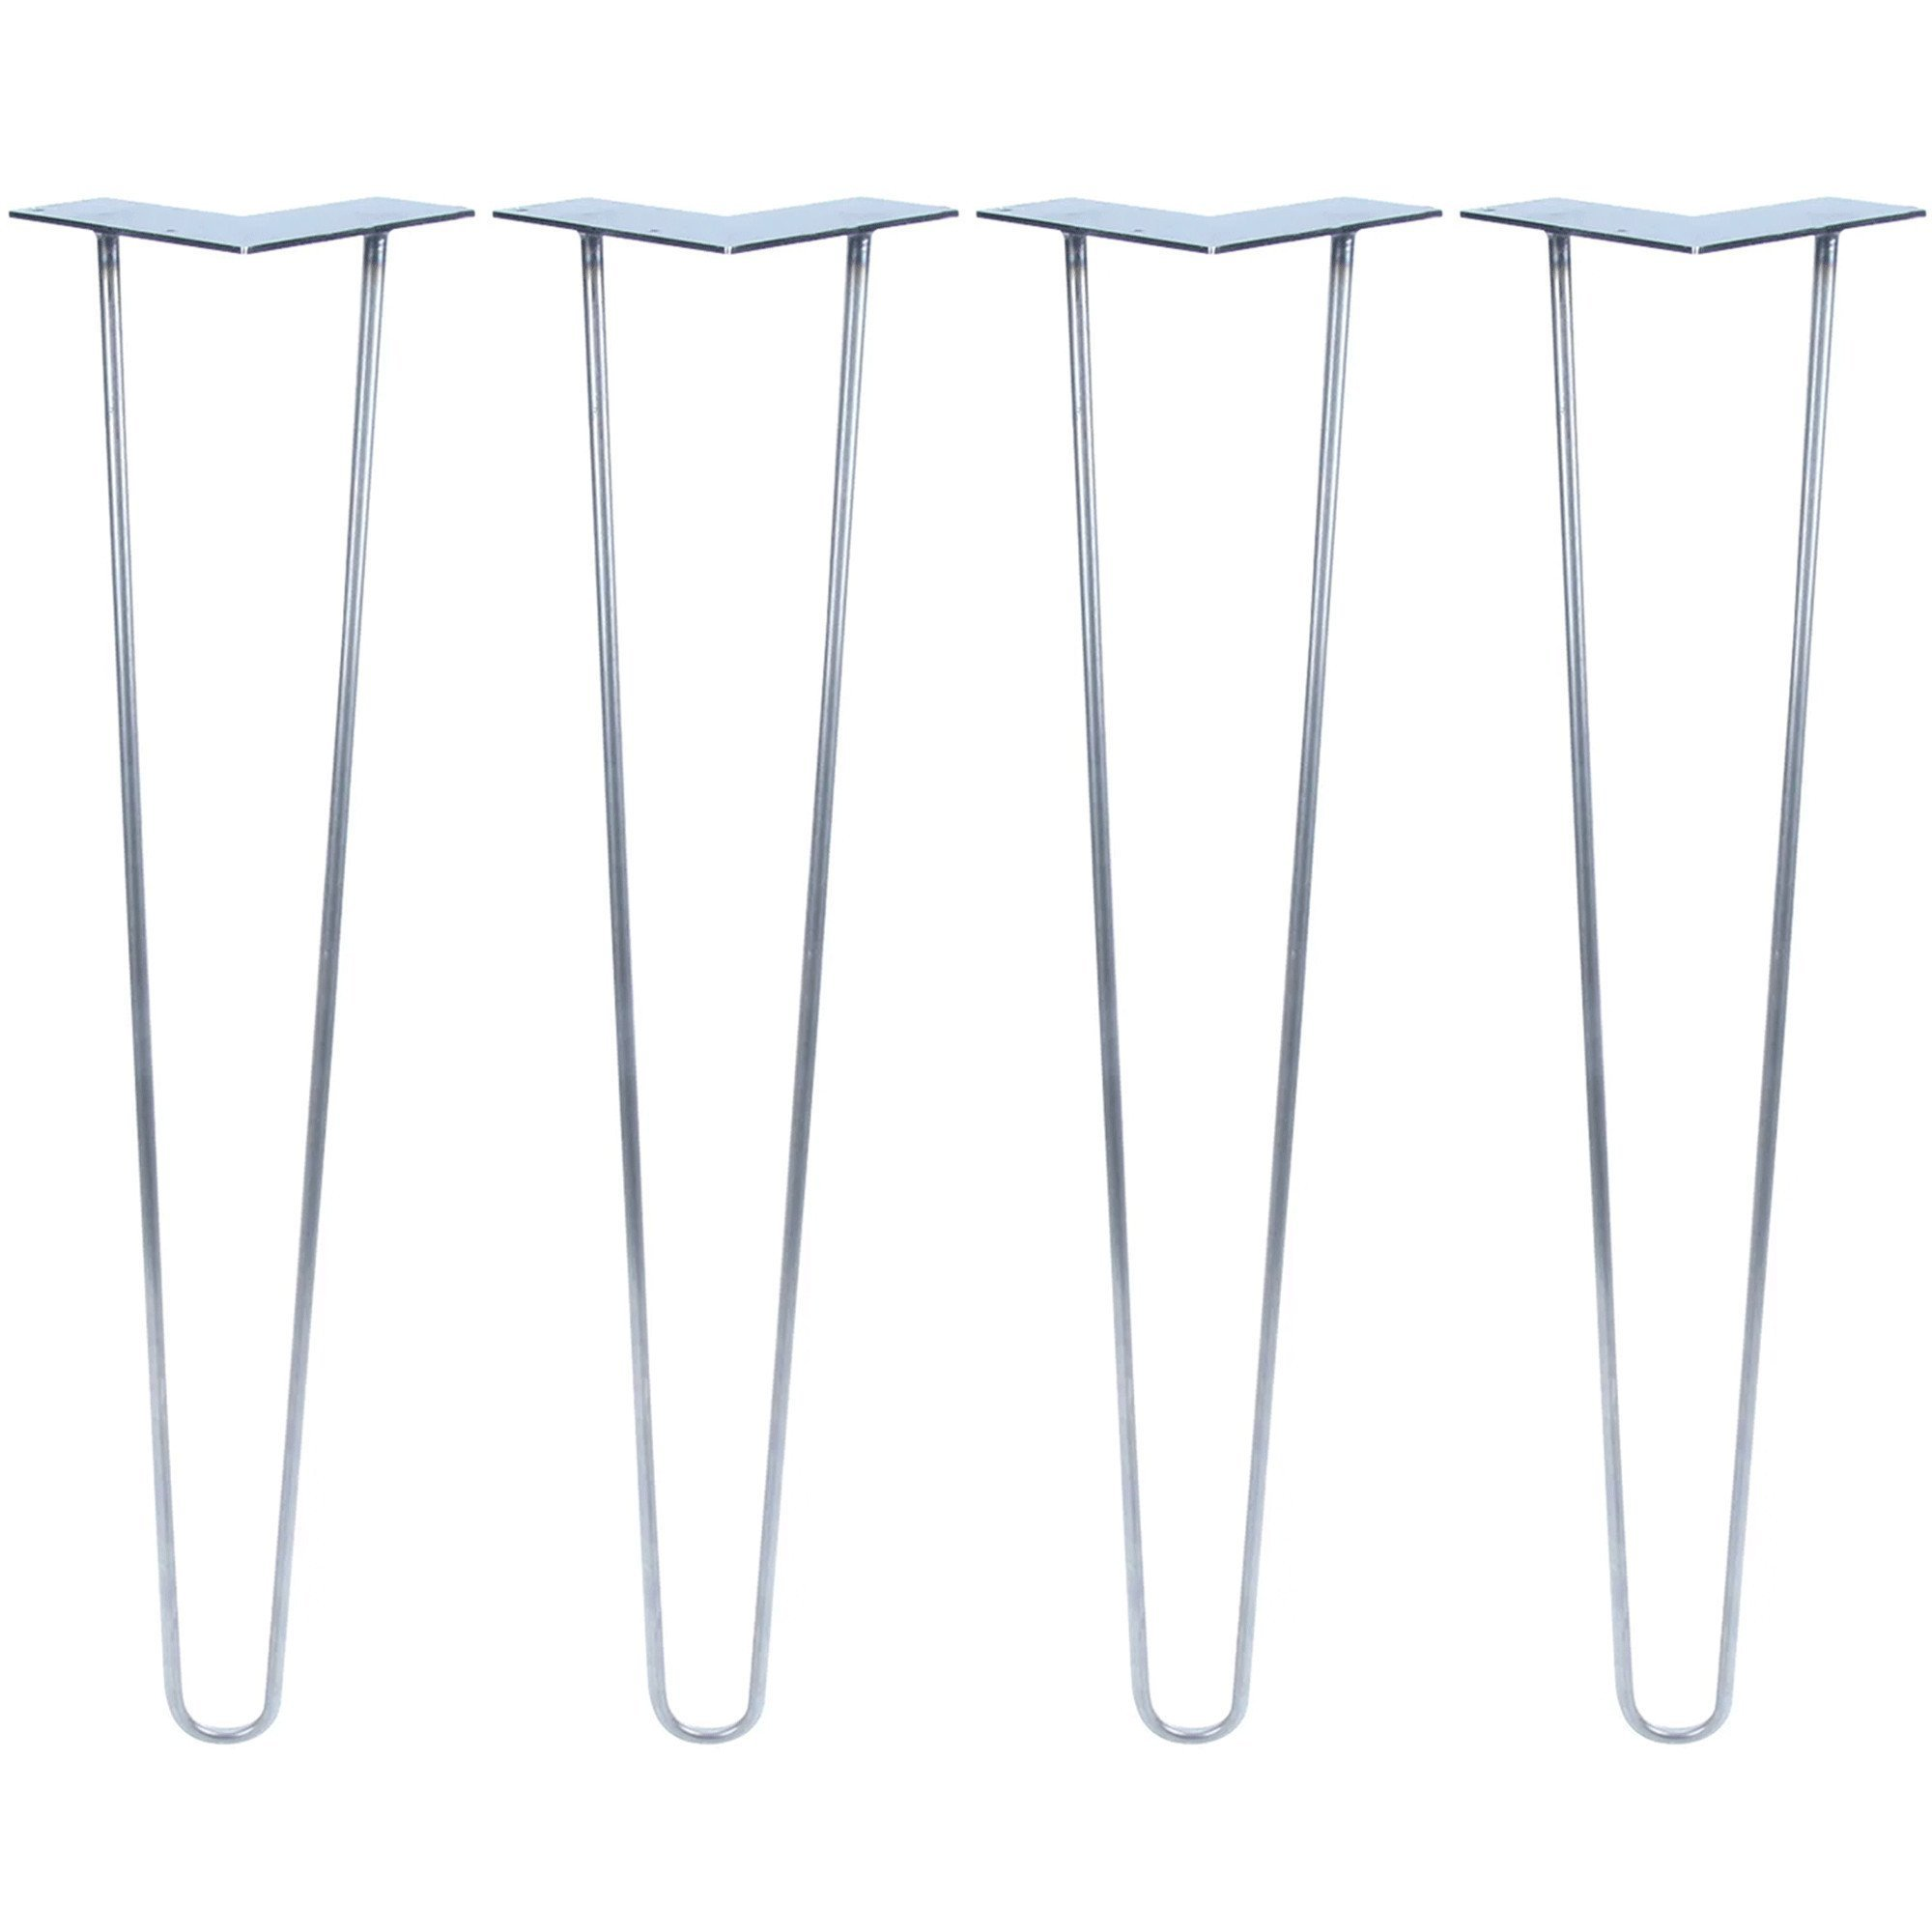 22 inch 2 Rod HD, Raw Steel Hairpin Legs Black 1/2'' Thick, Heavy Duty Set of 4 Legs, 4 Floor Protectors, 16 Screws - for Modern Coffee Table, Mid Century or Rustic Tables Legs